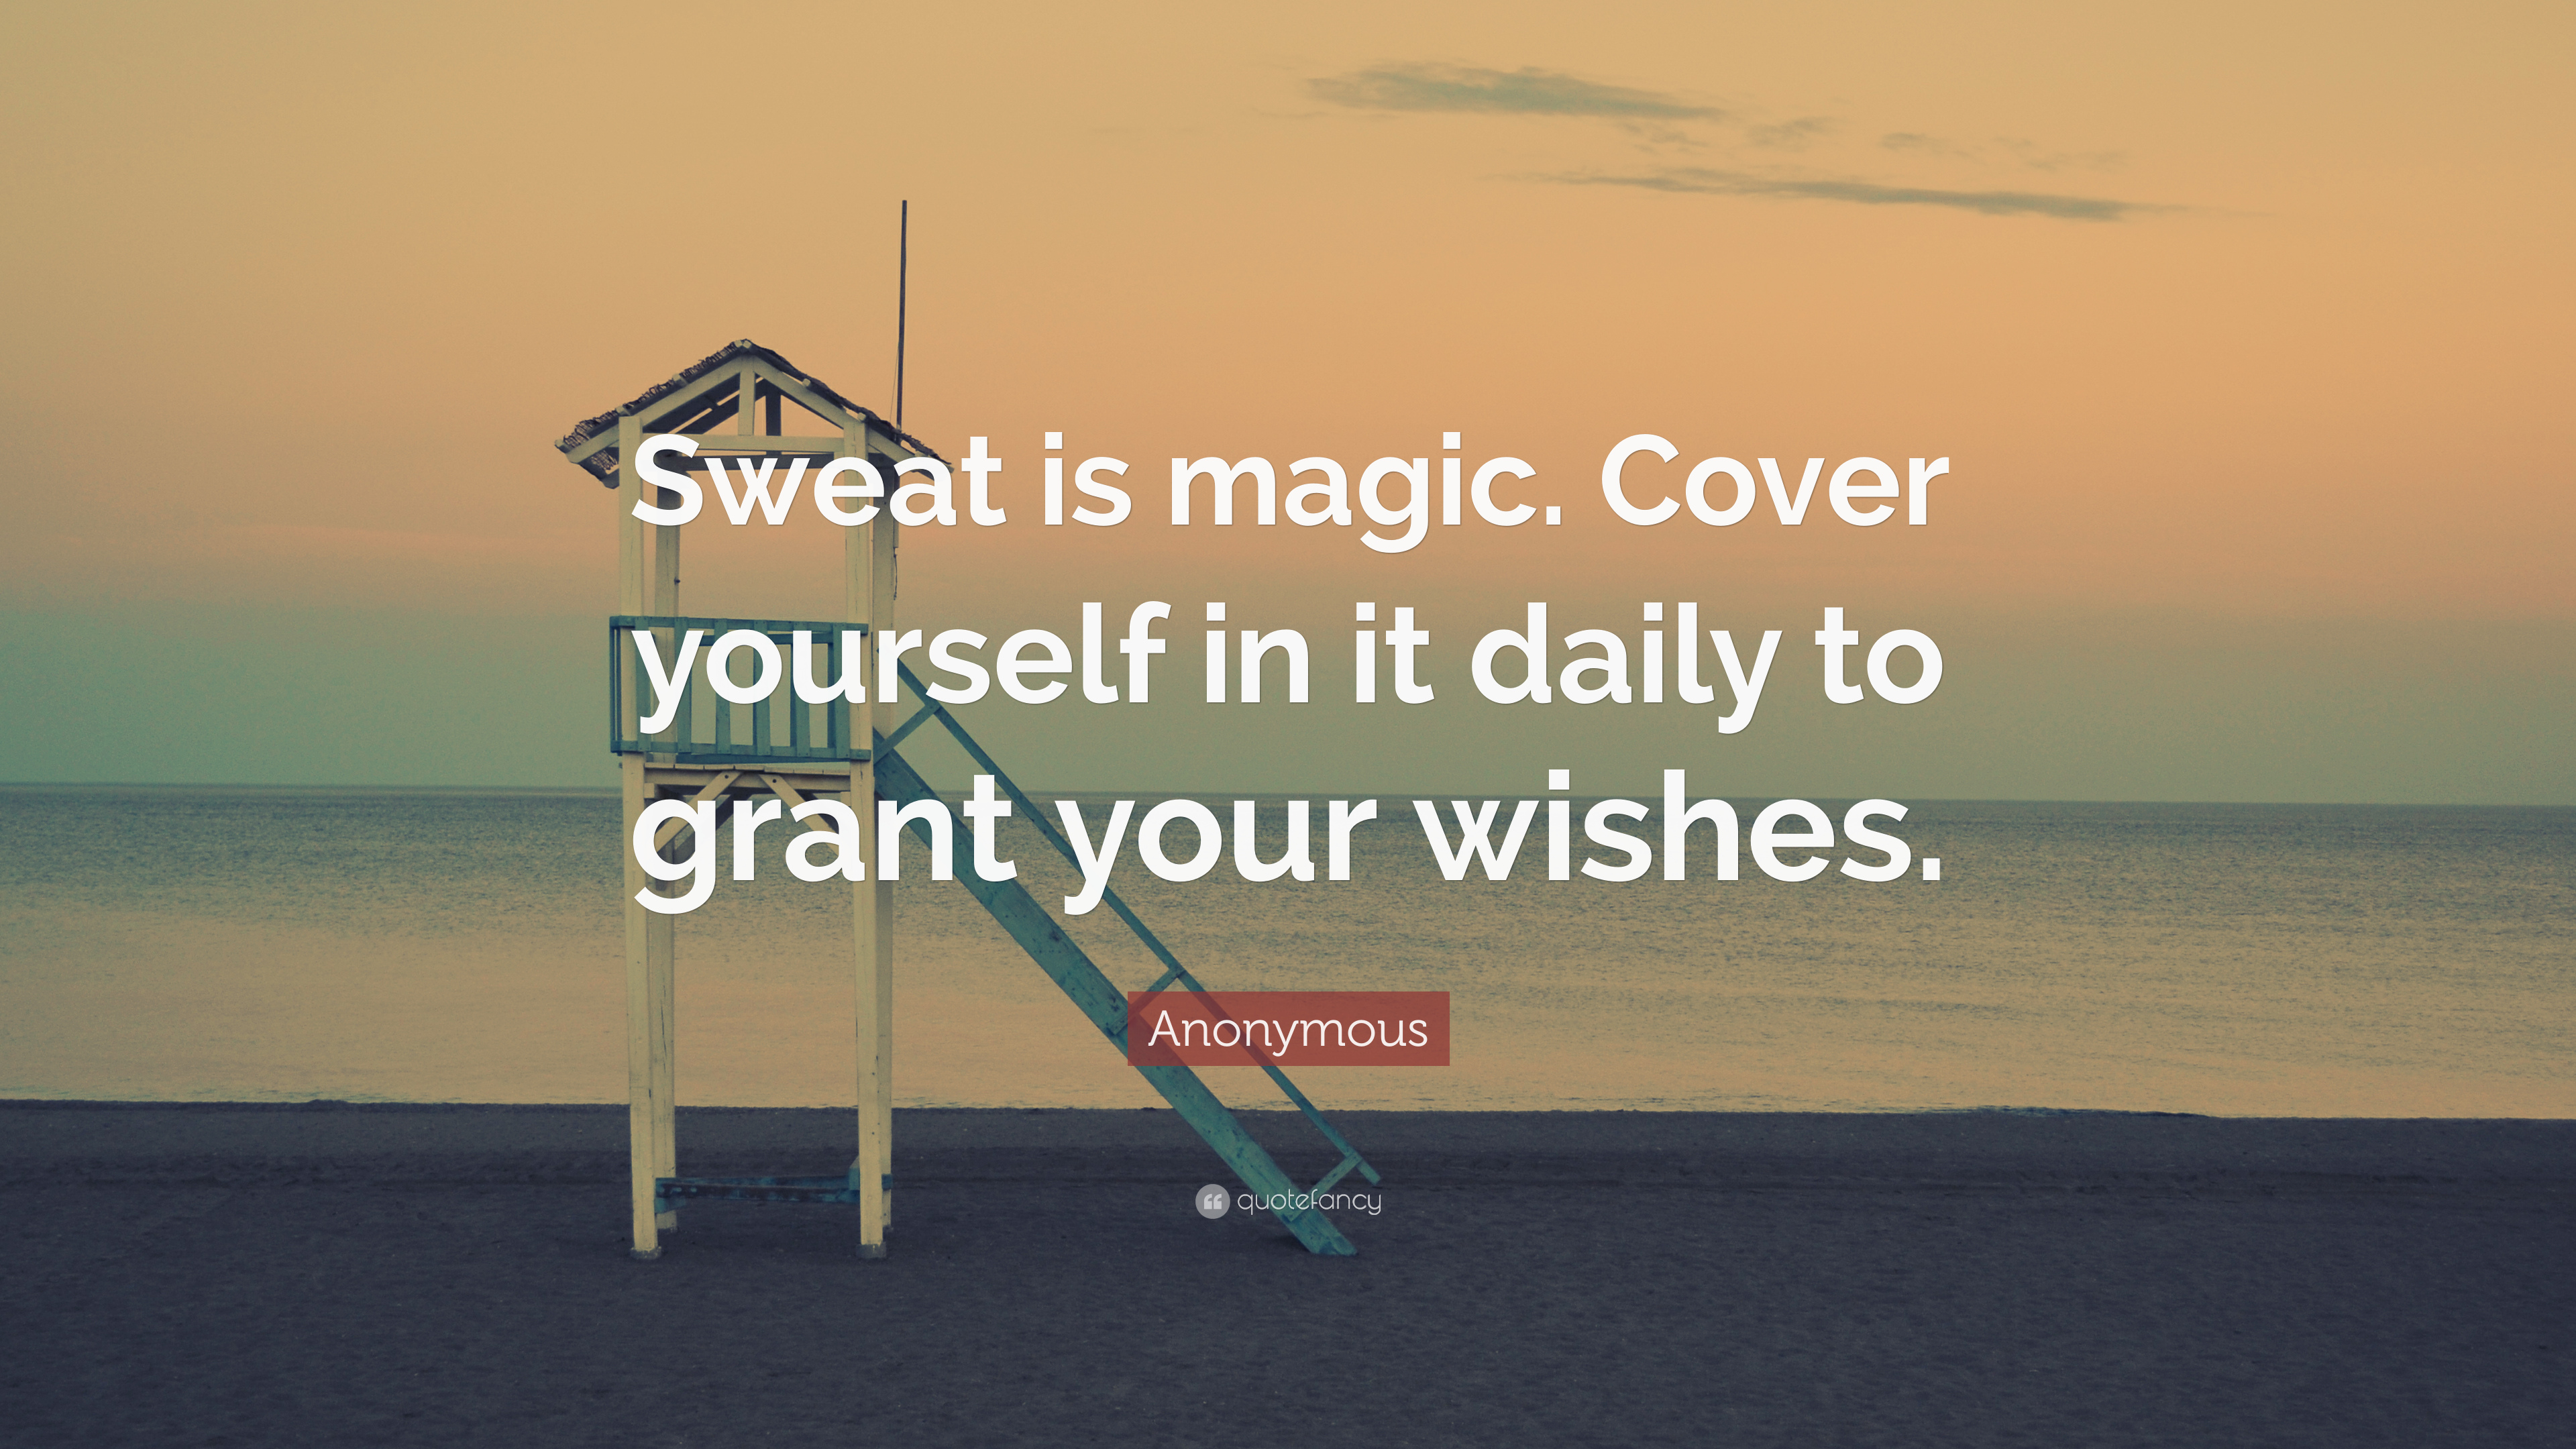 Image of: Facebook Covers Anonymous Quote sweat Is Magic Cover Yourself In It Daily To Grant Your Quotefancy Anonymous Quote sweat Is Magic Cover Yourself In It Daily To